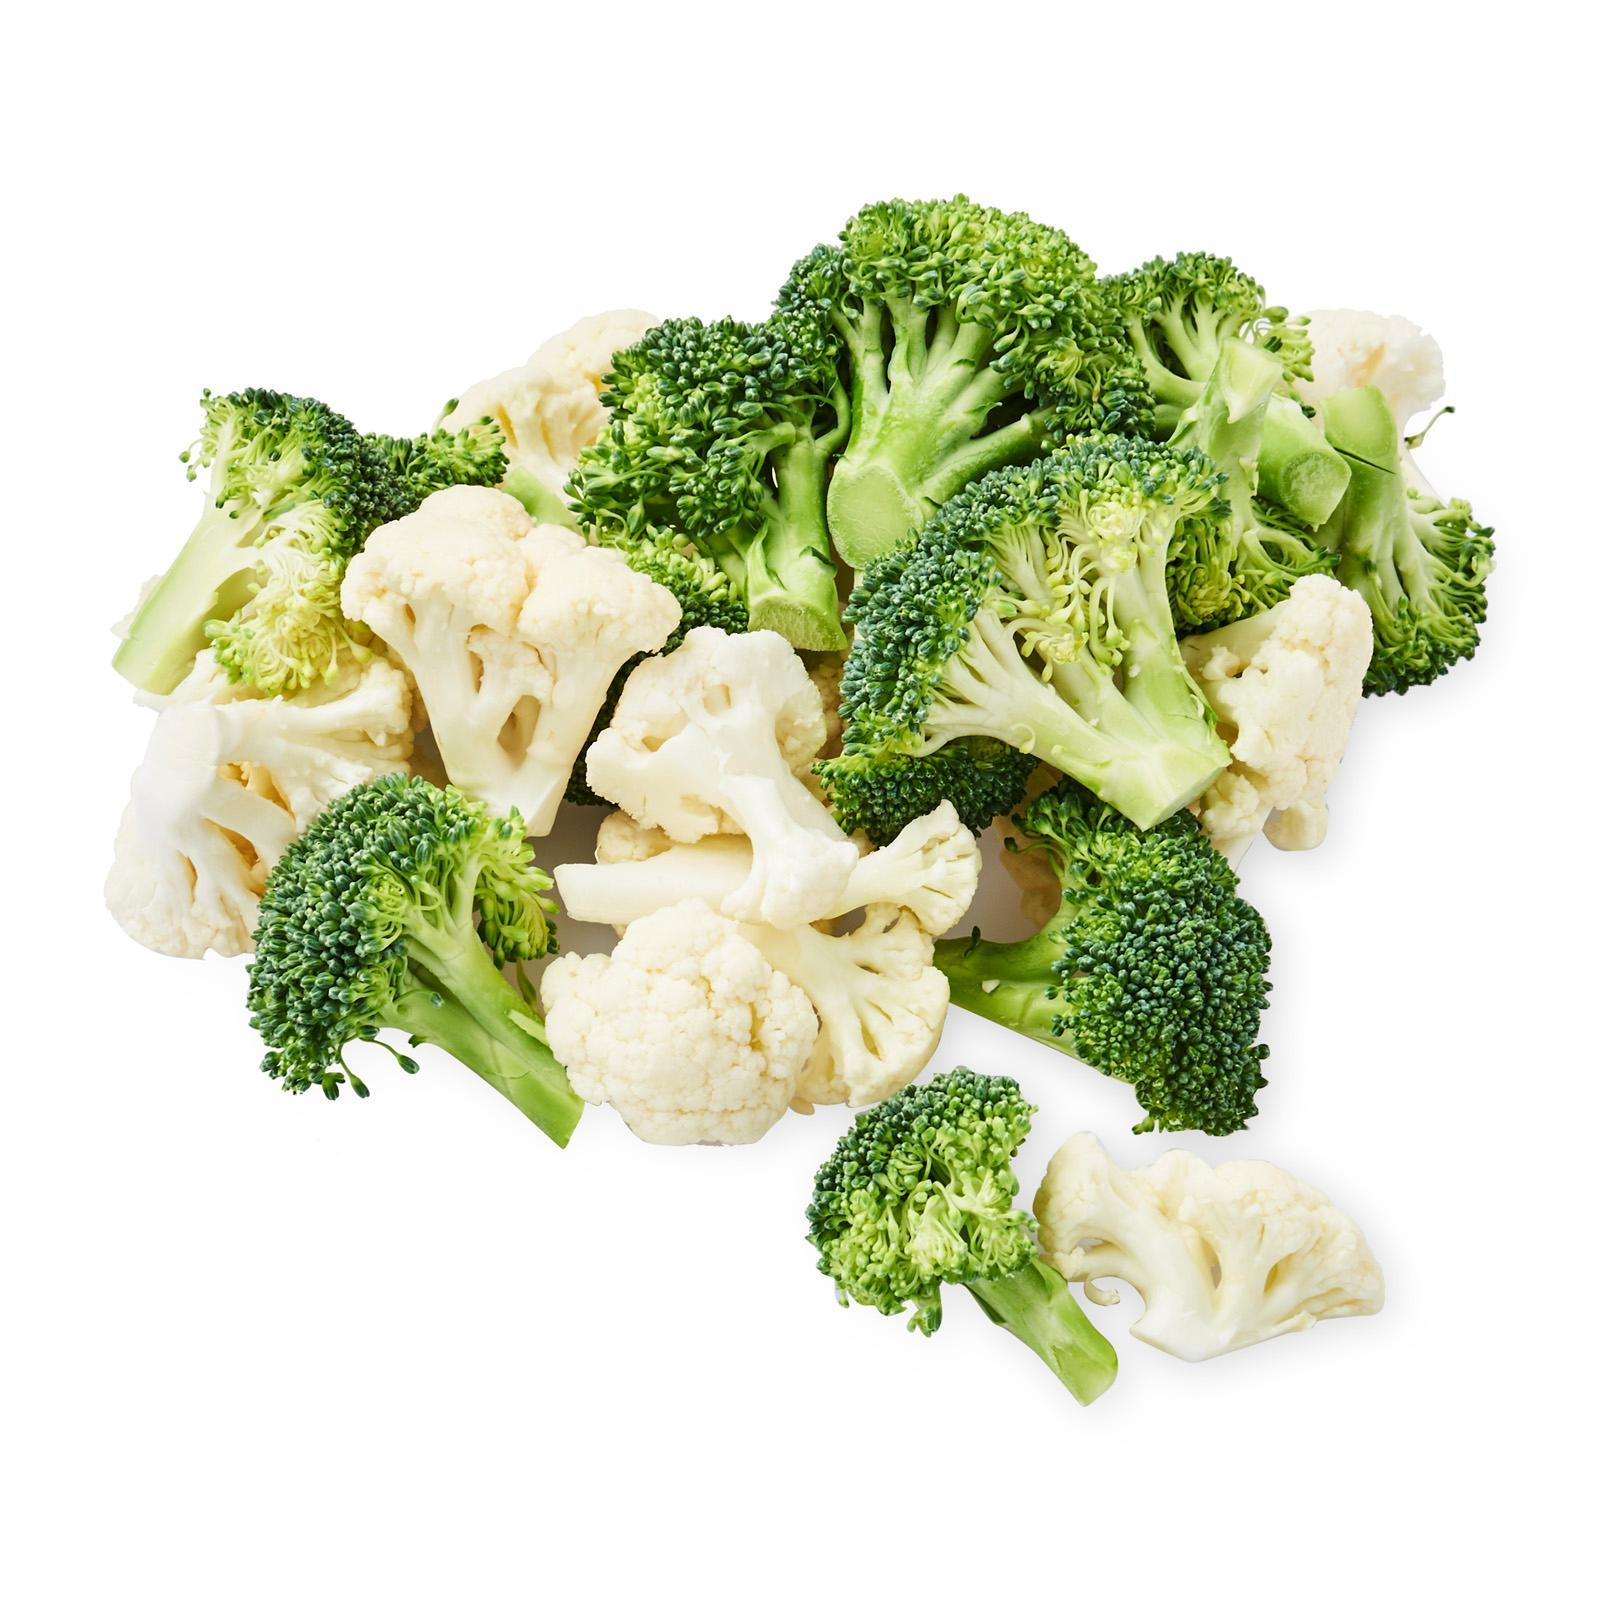 Modernmum Ready To Cook Broccoli And Cauliflower (cut And Washed) By Redmart.